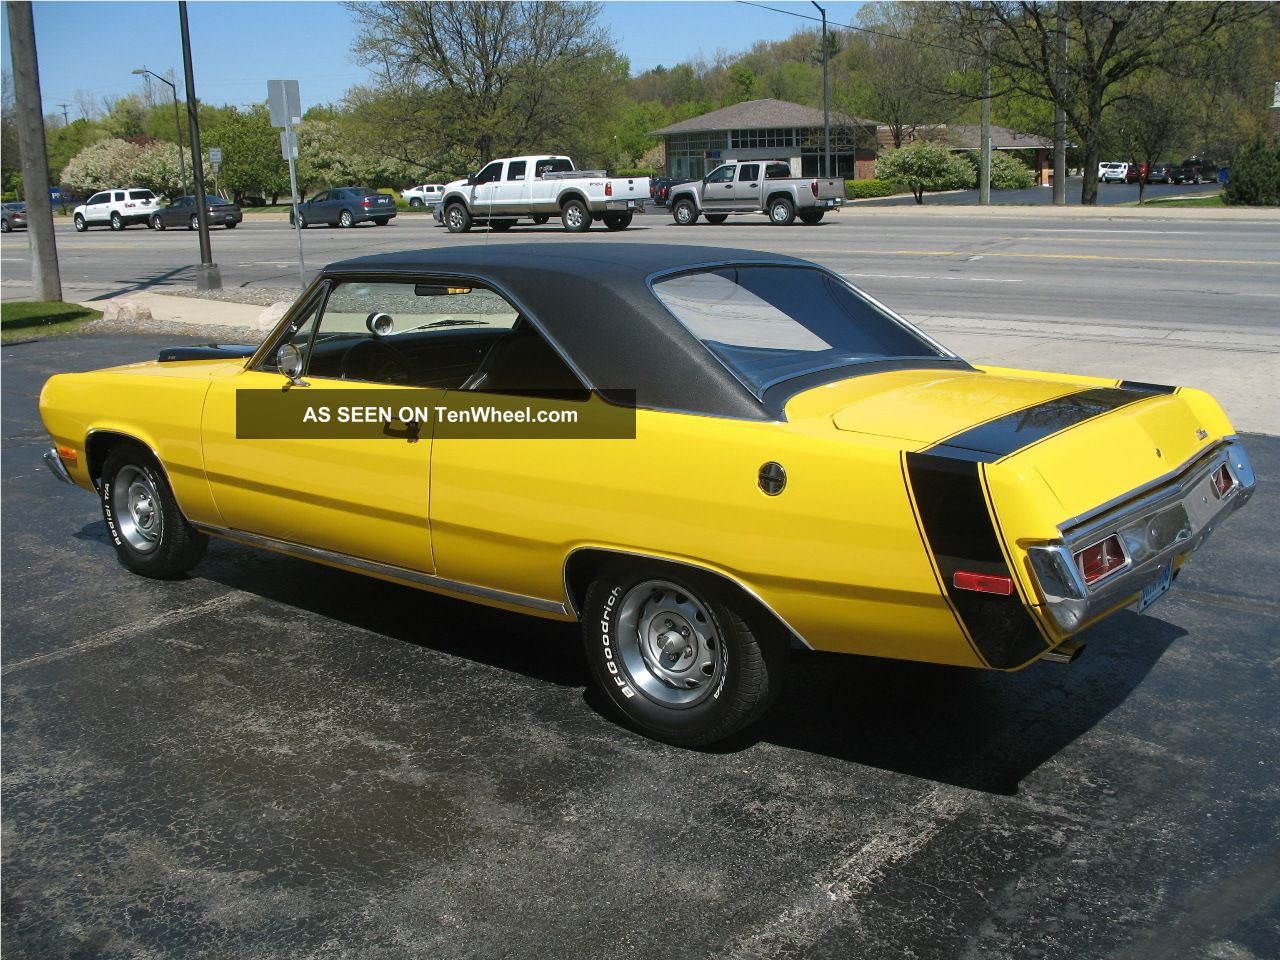 1972 Plymouth Scamp Performance Yellow 340 4 Speed Disc Brakes Recent Resto